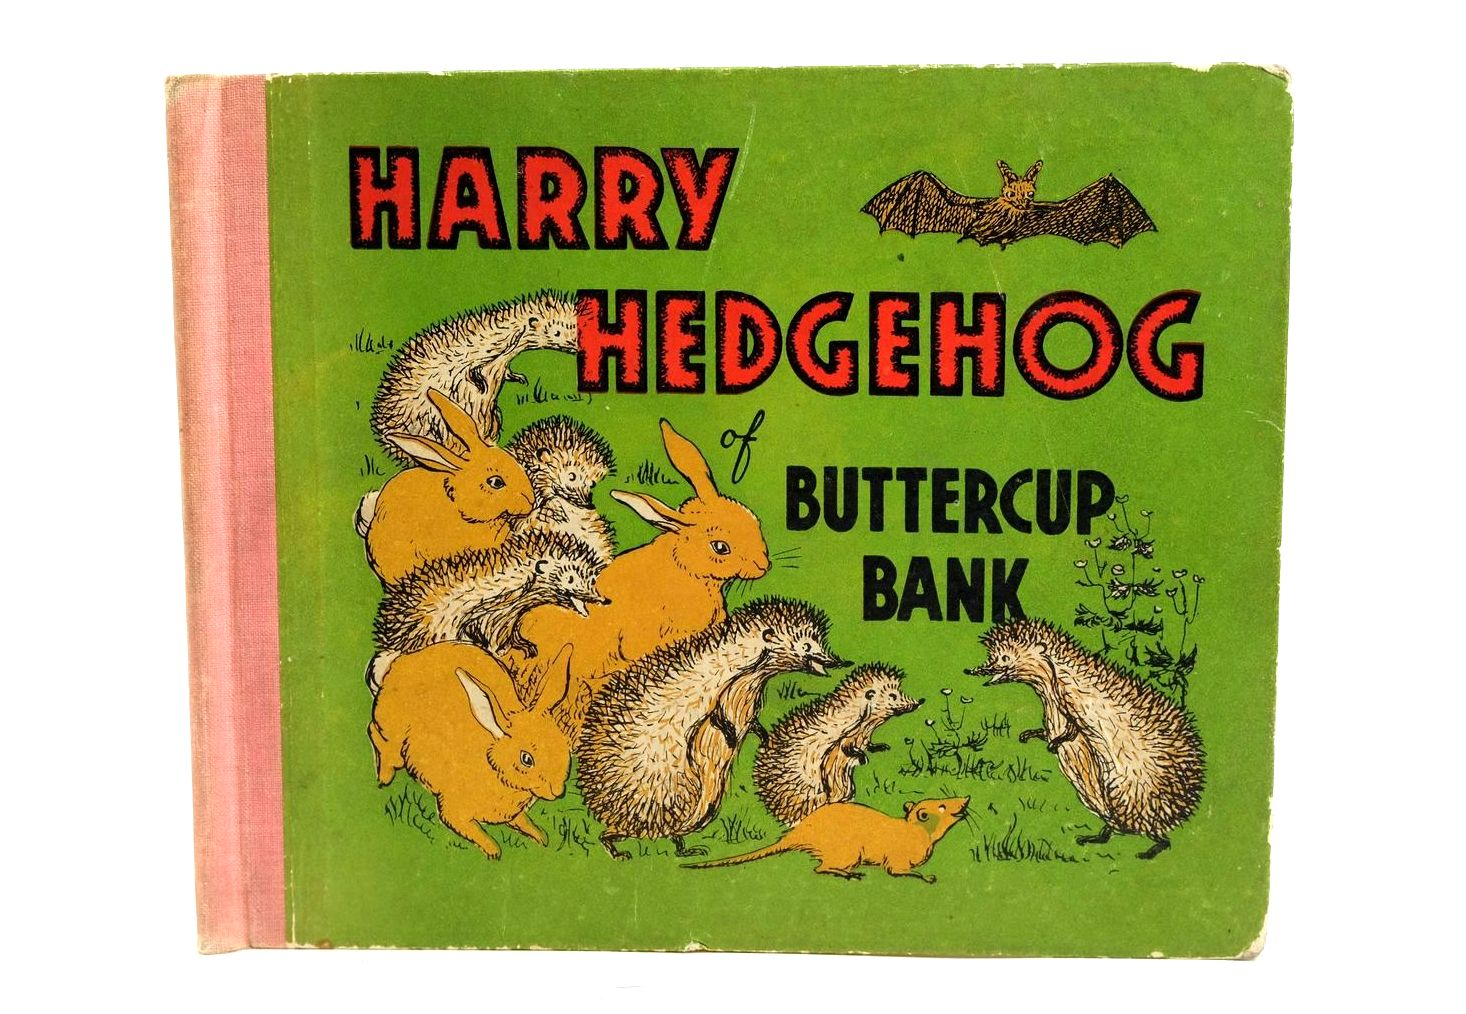 Photo of HARRY HEDGEHOG OF BUTTERCUP BANK written by Hunt, Winifred illustrated by Rickaby, Joan published by Blandford Press Ltd. (STOCK CODE: 1320442)  for sale by Stella & Rose's Books